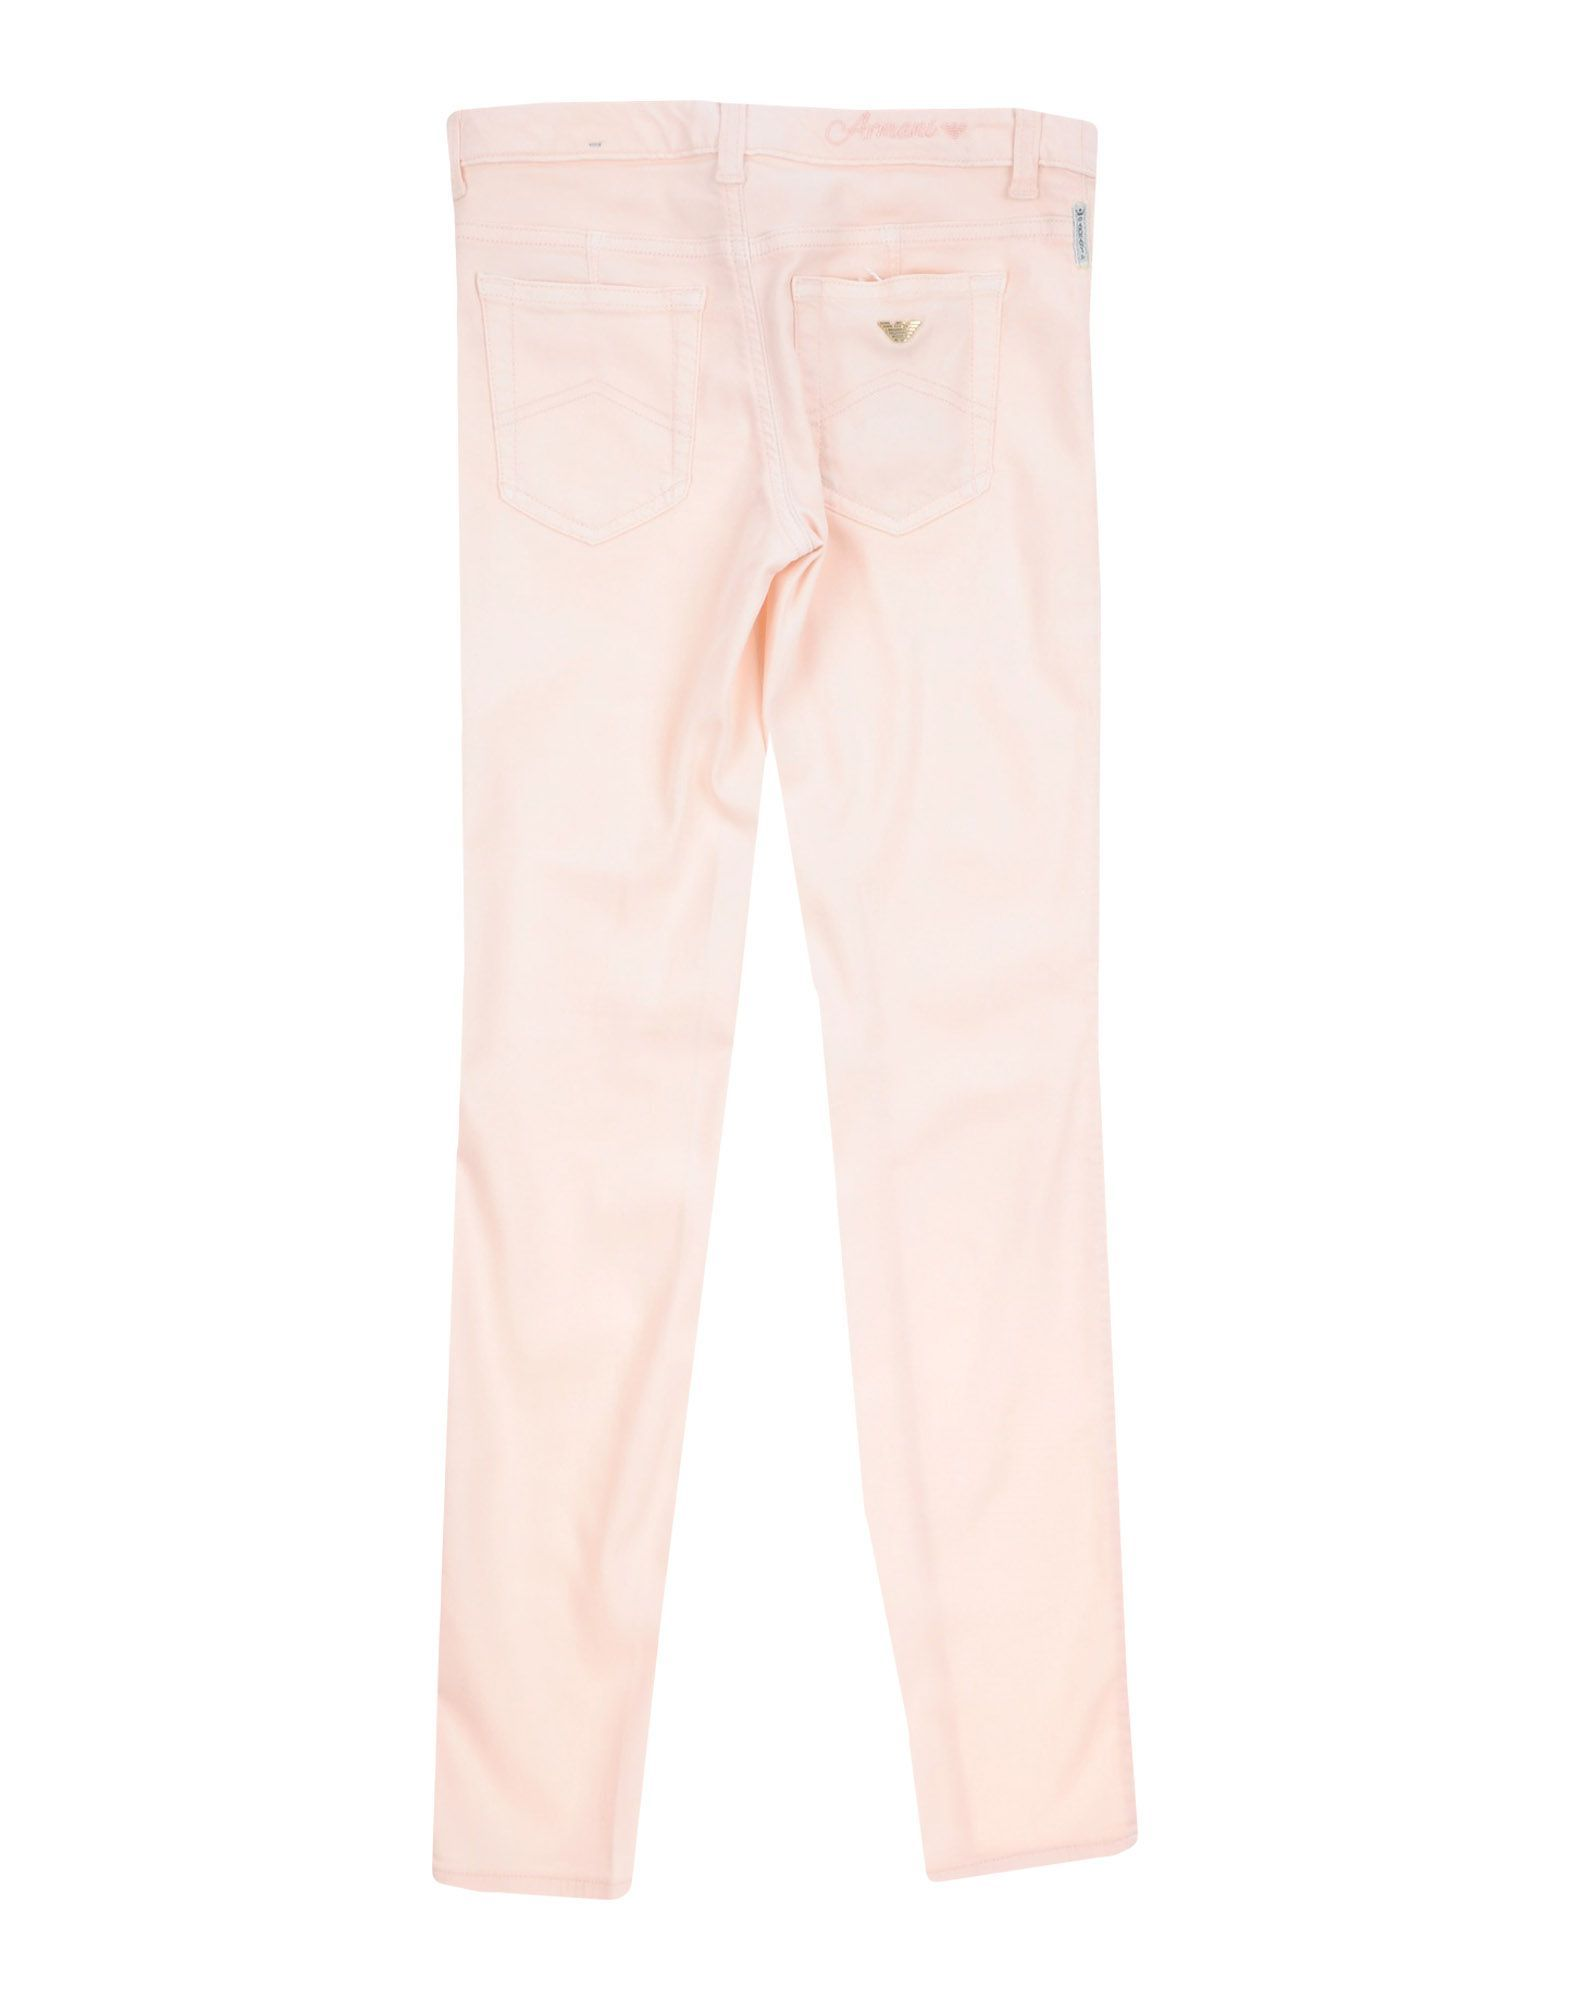 TROUSERS Armani Junior Light pink Girl Modal